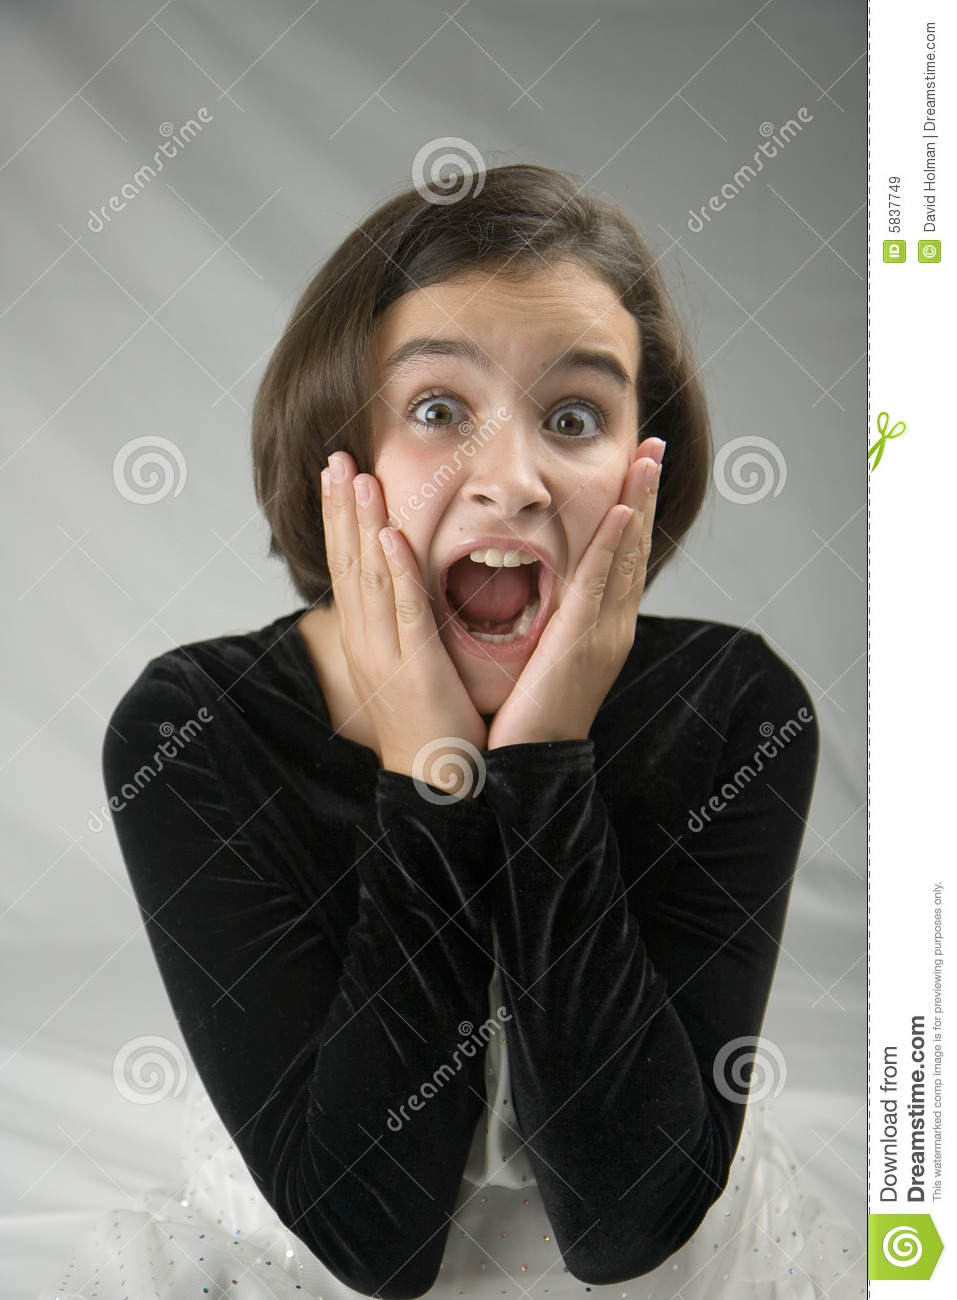 Frightened Girl stock image. Image of open, hands, formal ...